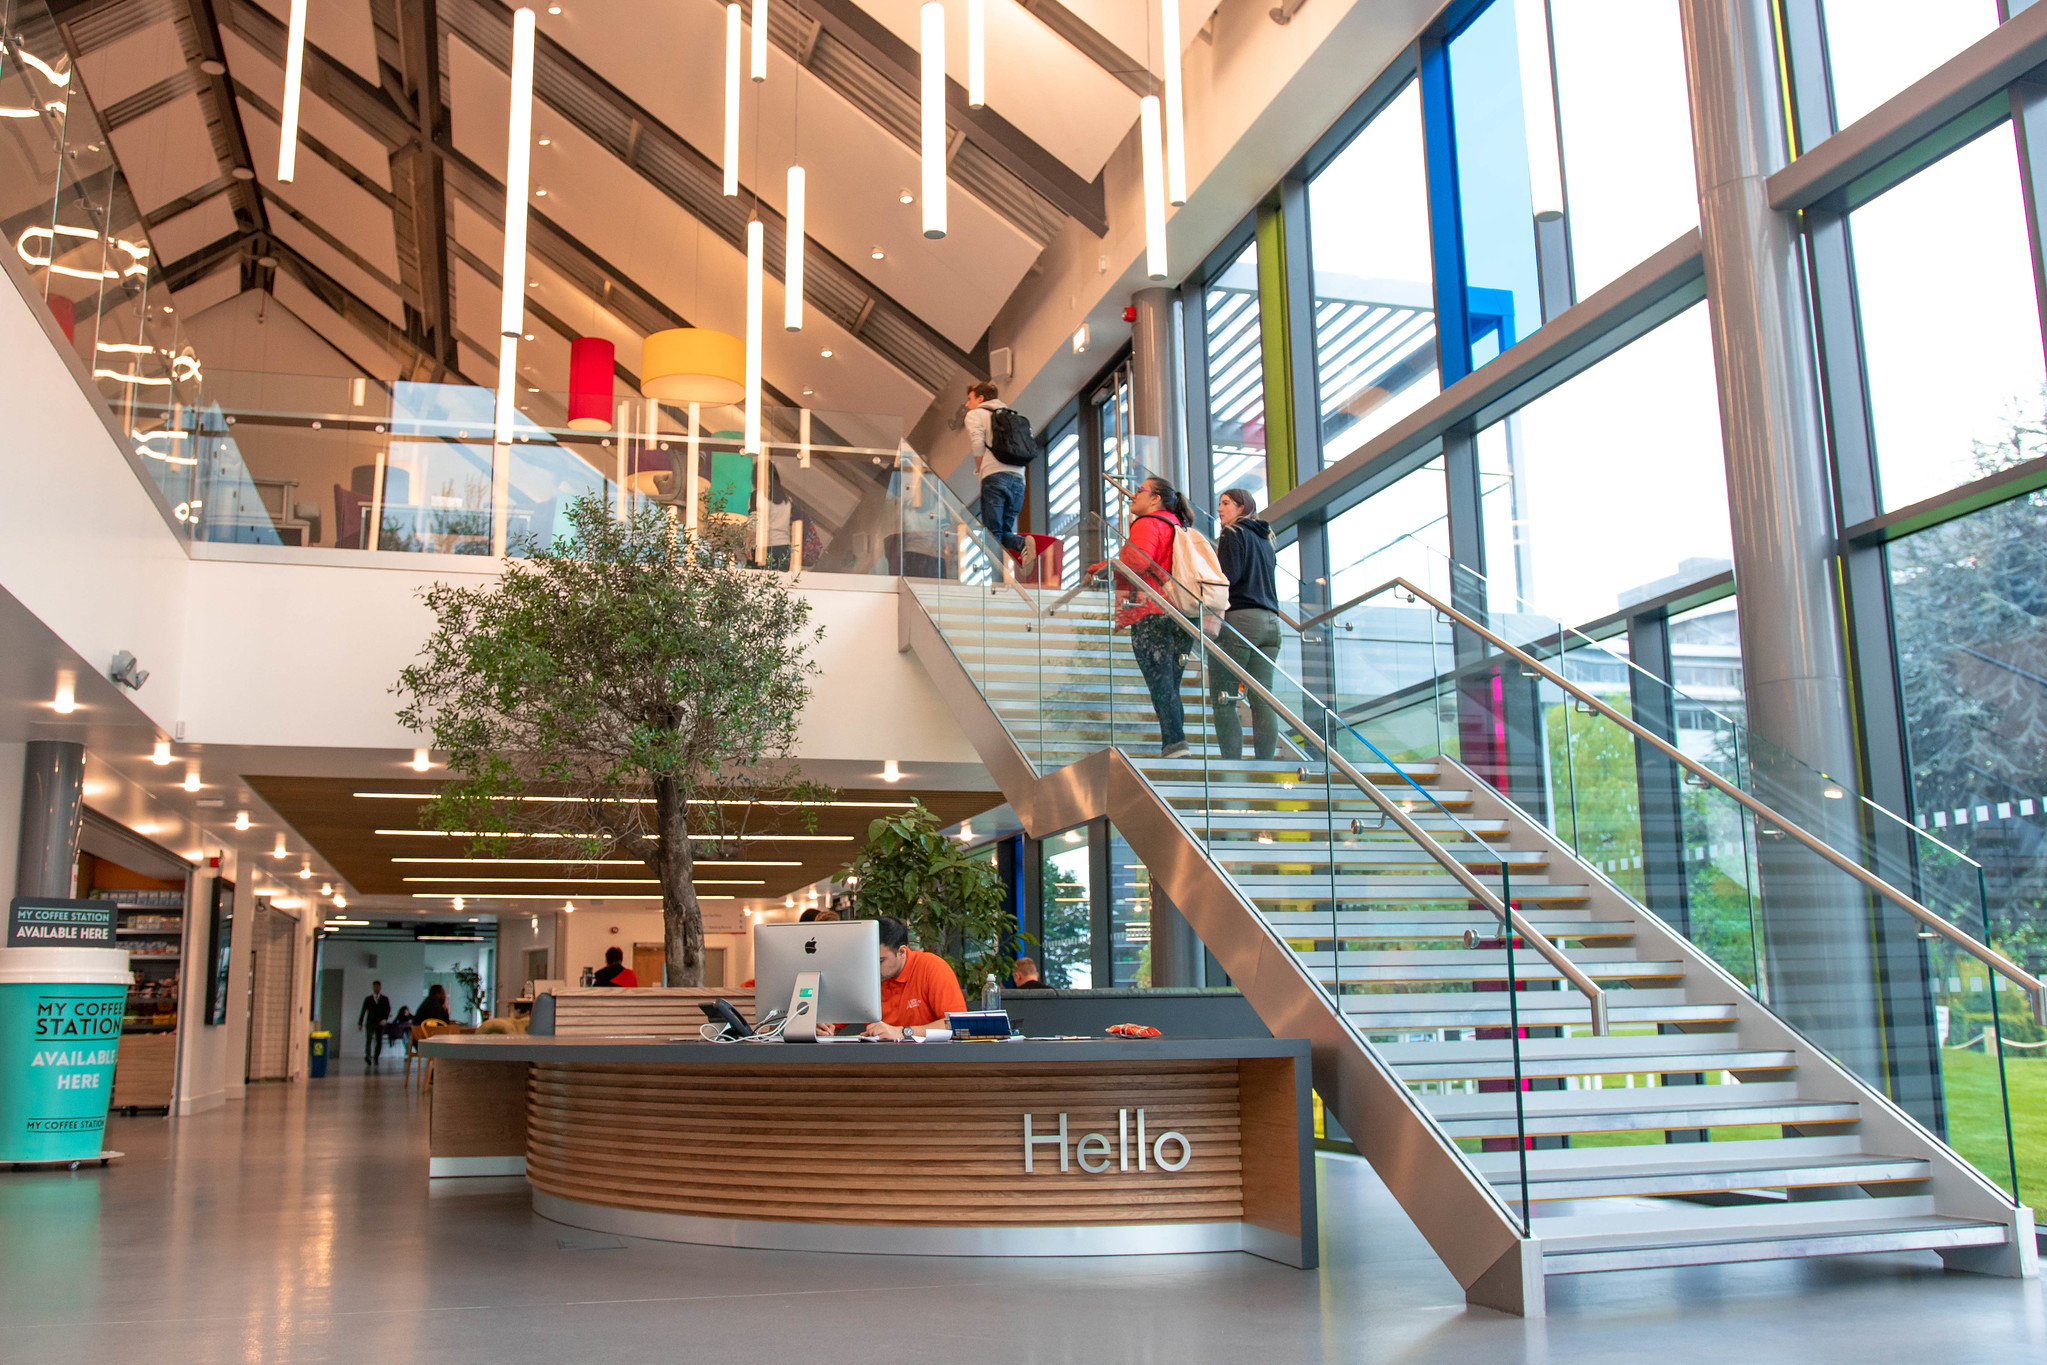 Clegg Construction competes new Students' Union building at Aston University